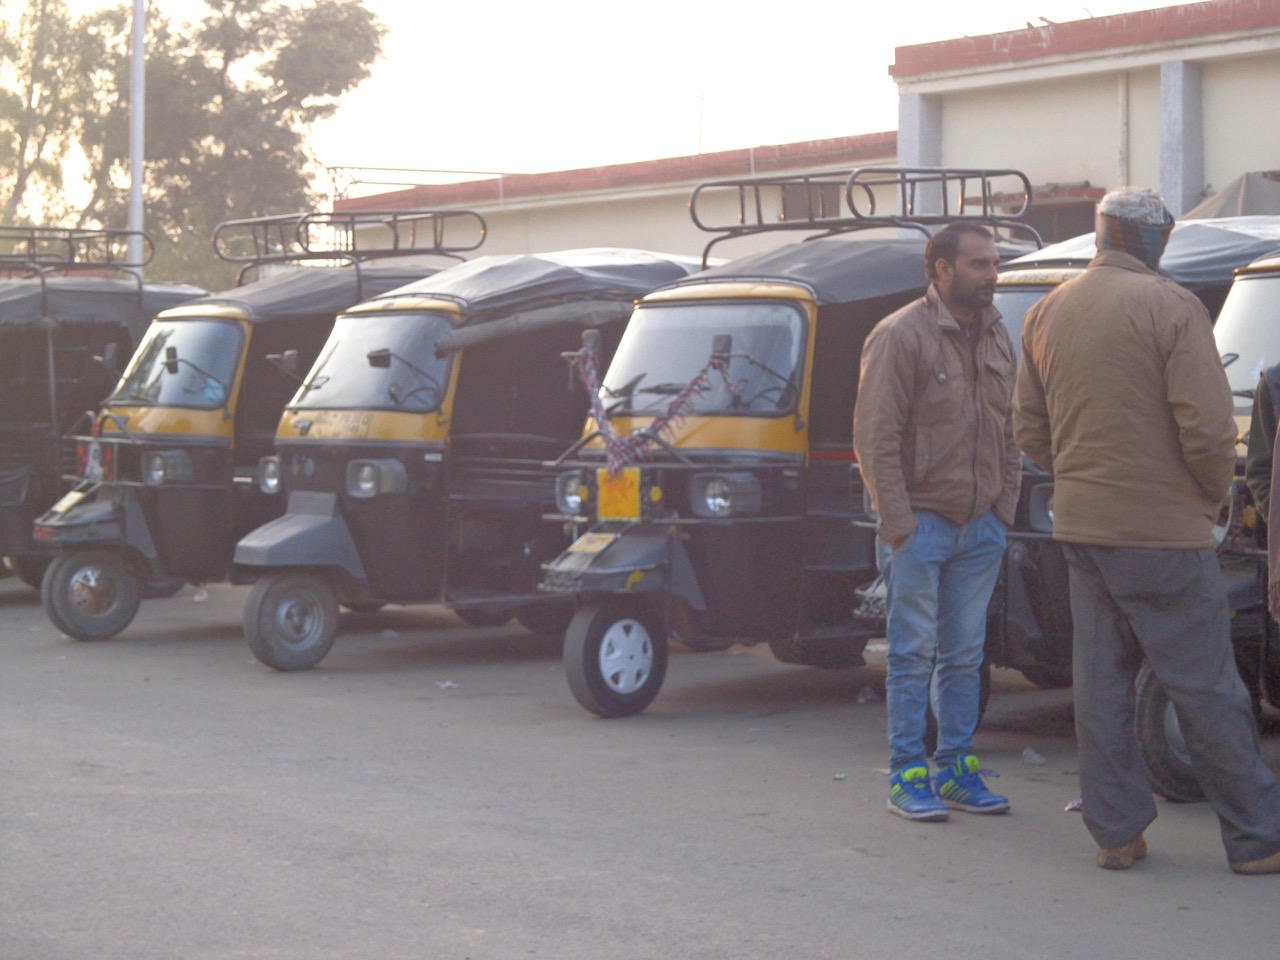 These auto rickshaw's are over designed. They carry a huge amount of load.